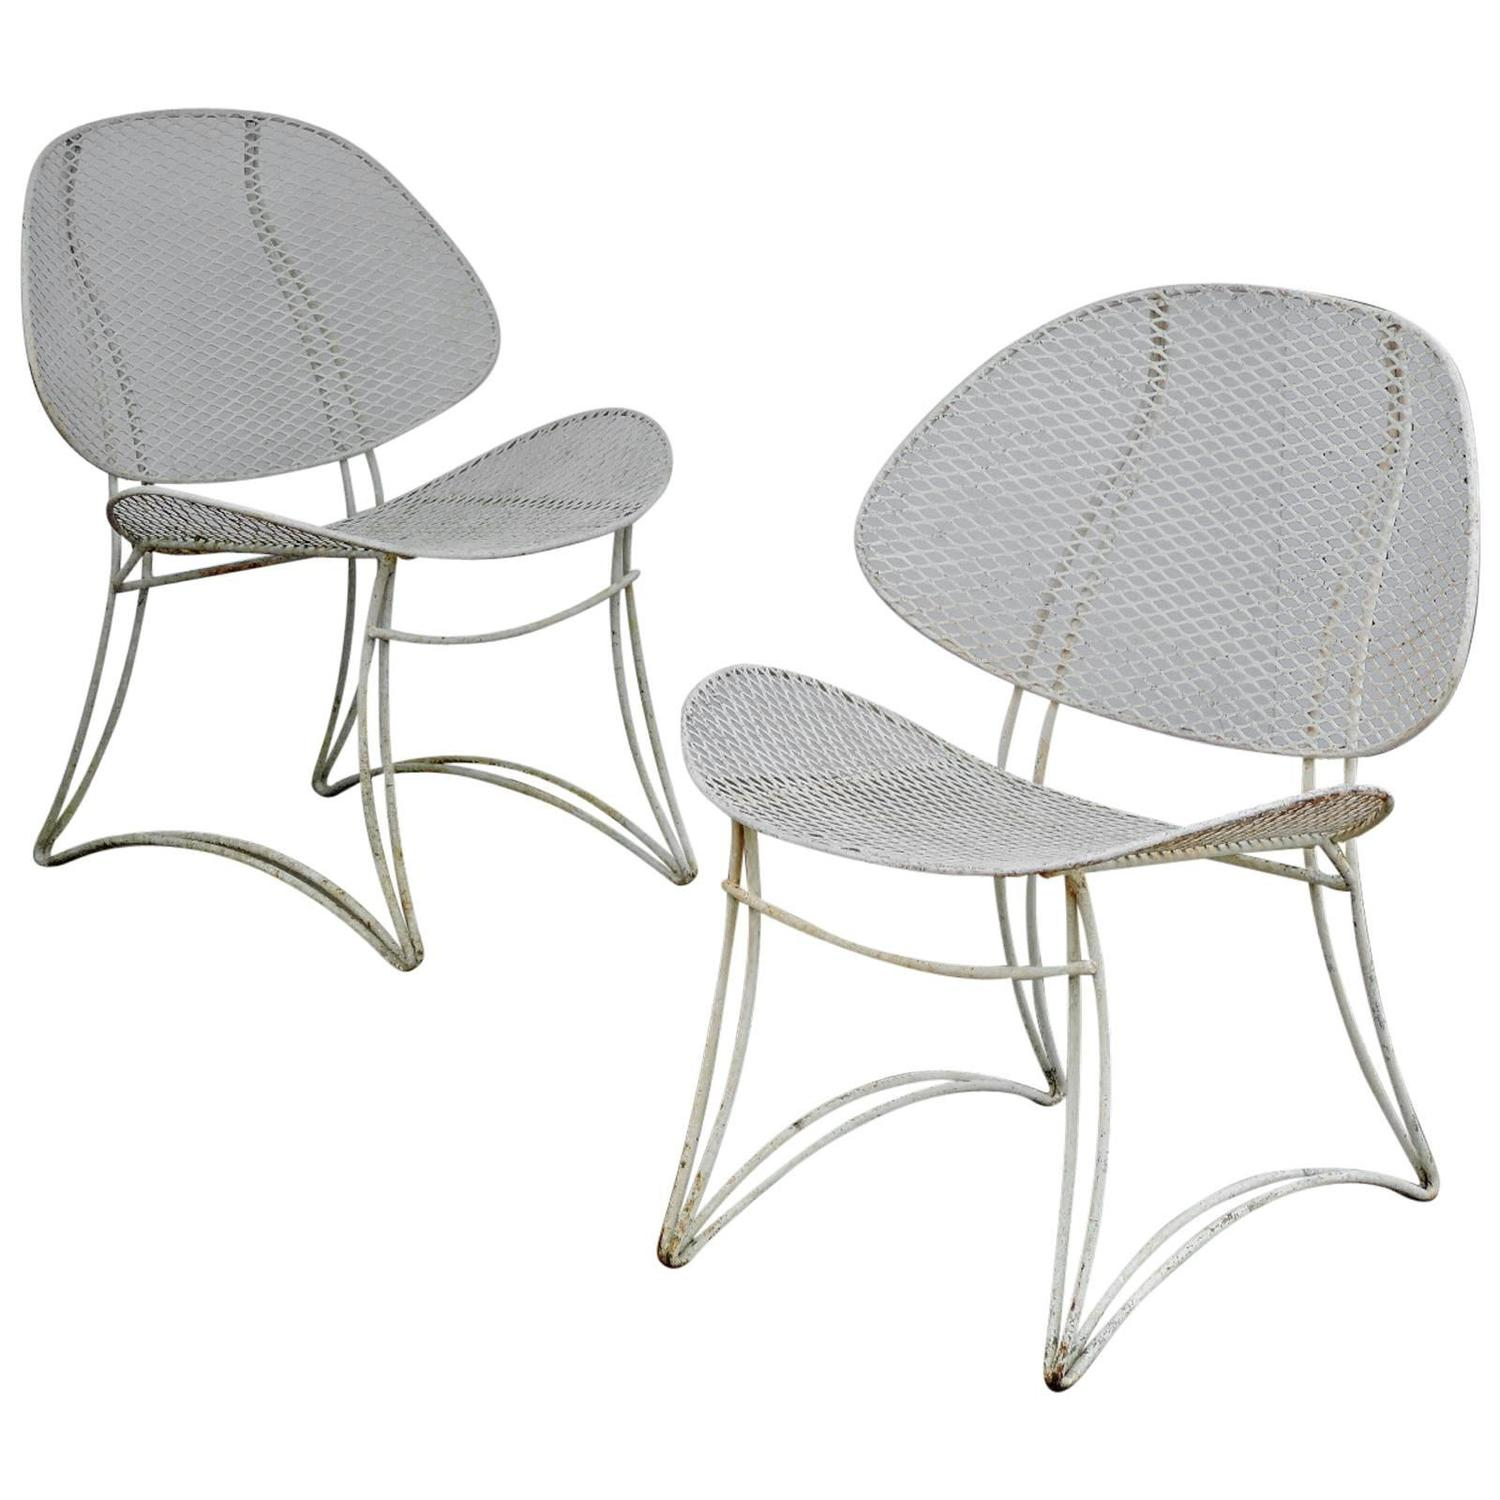 chat allure homecrest sunnyland outdoor chair furniture p sling patio